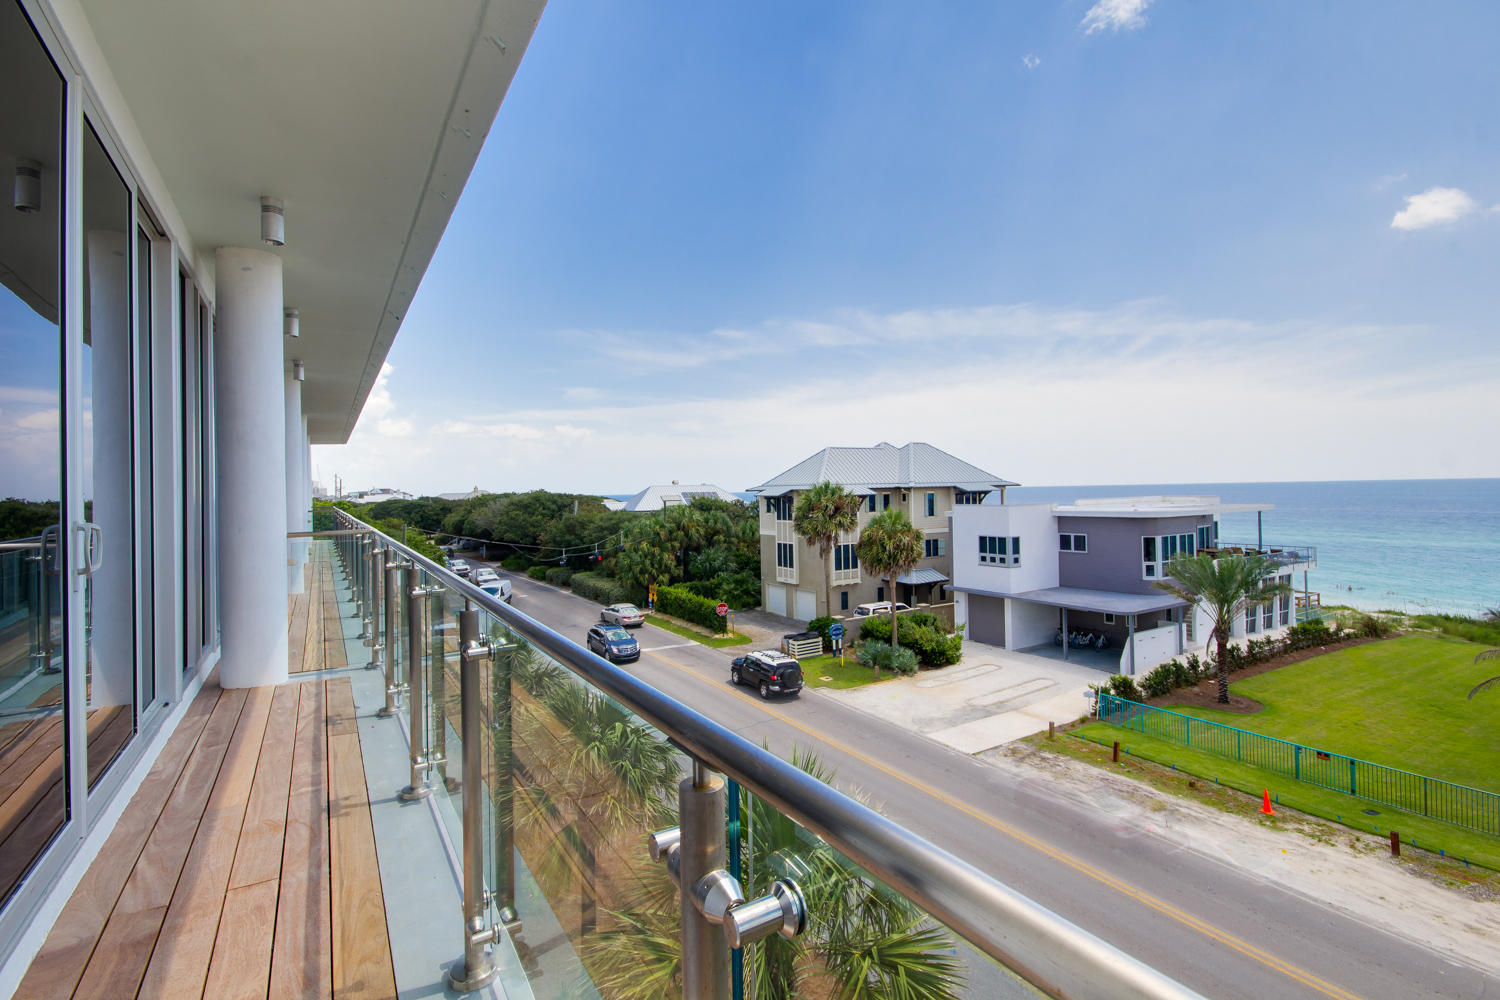 2743 Scenic Hwy 30A,Santa Rosa Beach,Florida 32459,3 Bedrooms Bedrooms,3 BathroomsBathrooms,Condominium,Scenic Hwy 30A,20131126143817002353000000